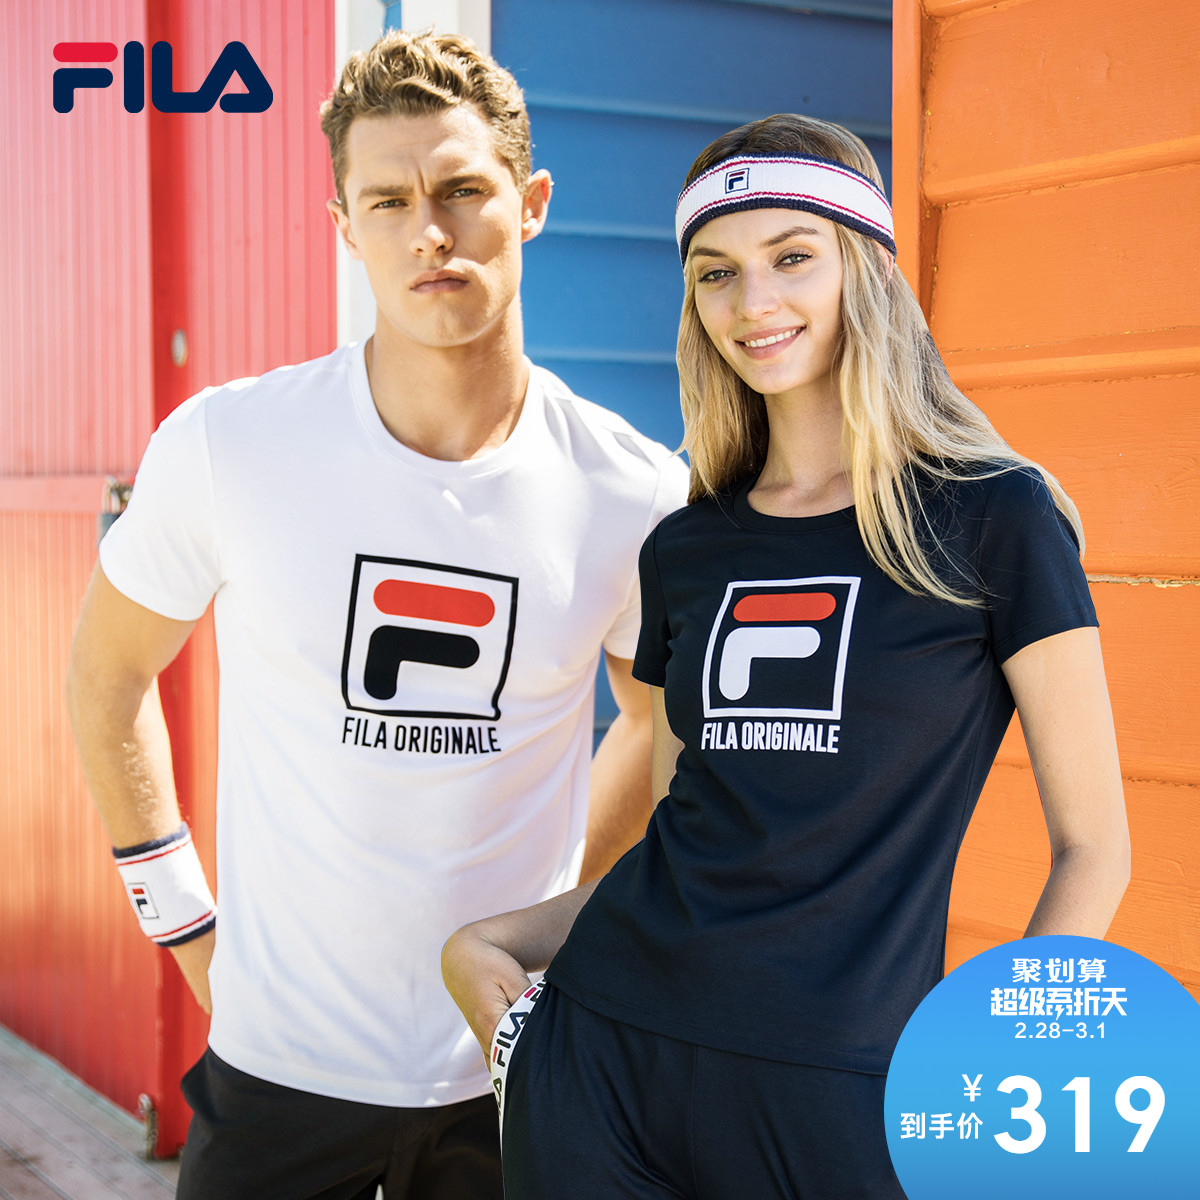 FILA FILA official couple short sleeve T-shirt 2020 spring Valentine's Day leisure sports base coat girl boyfriend